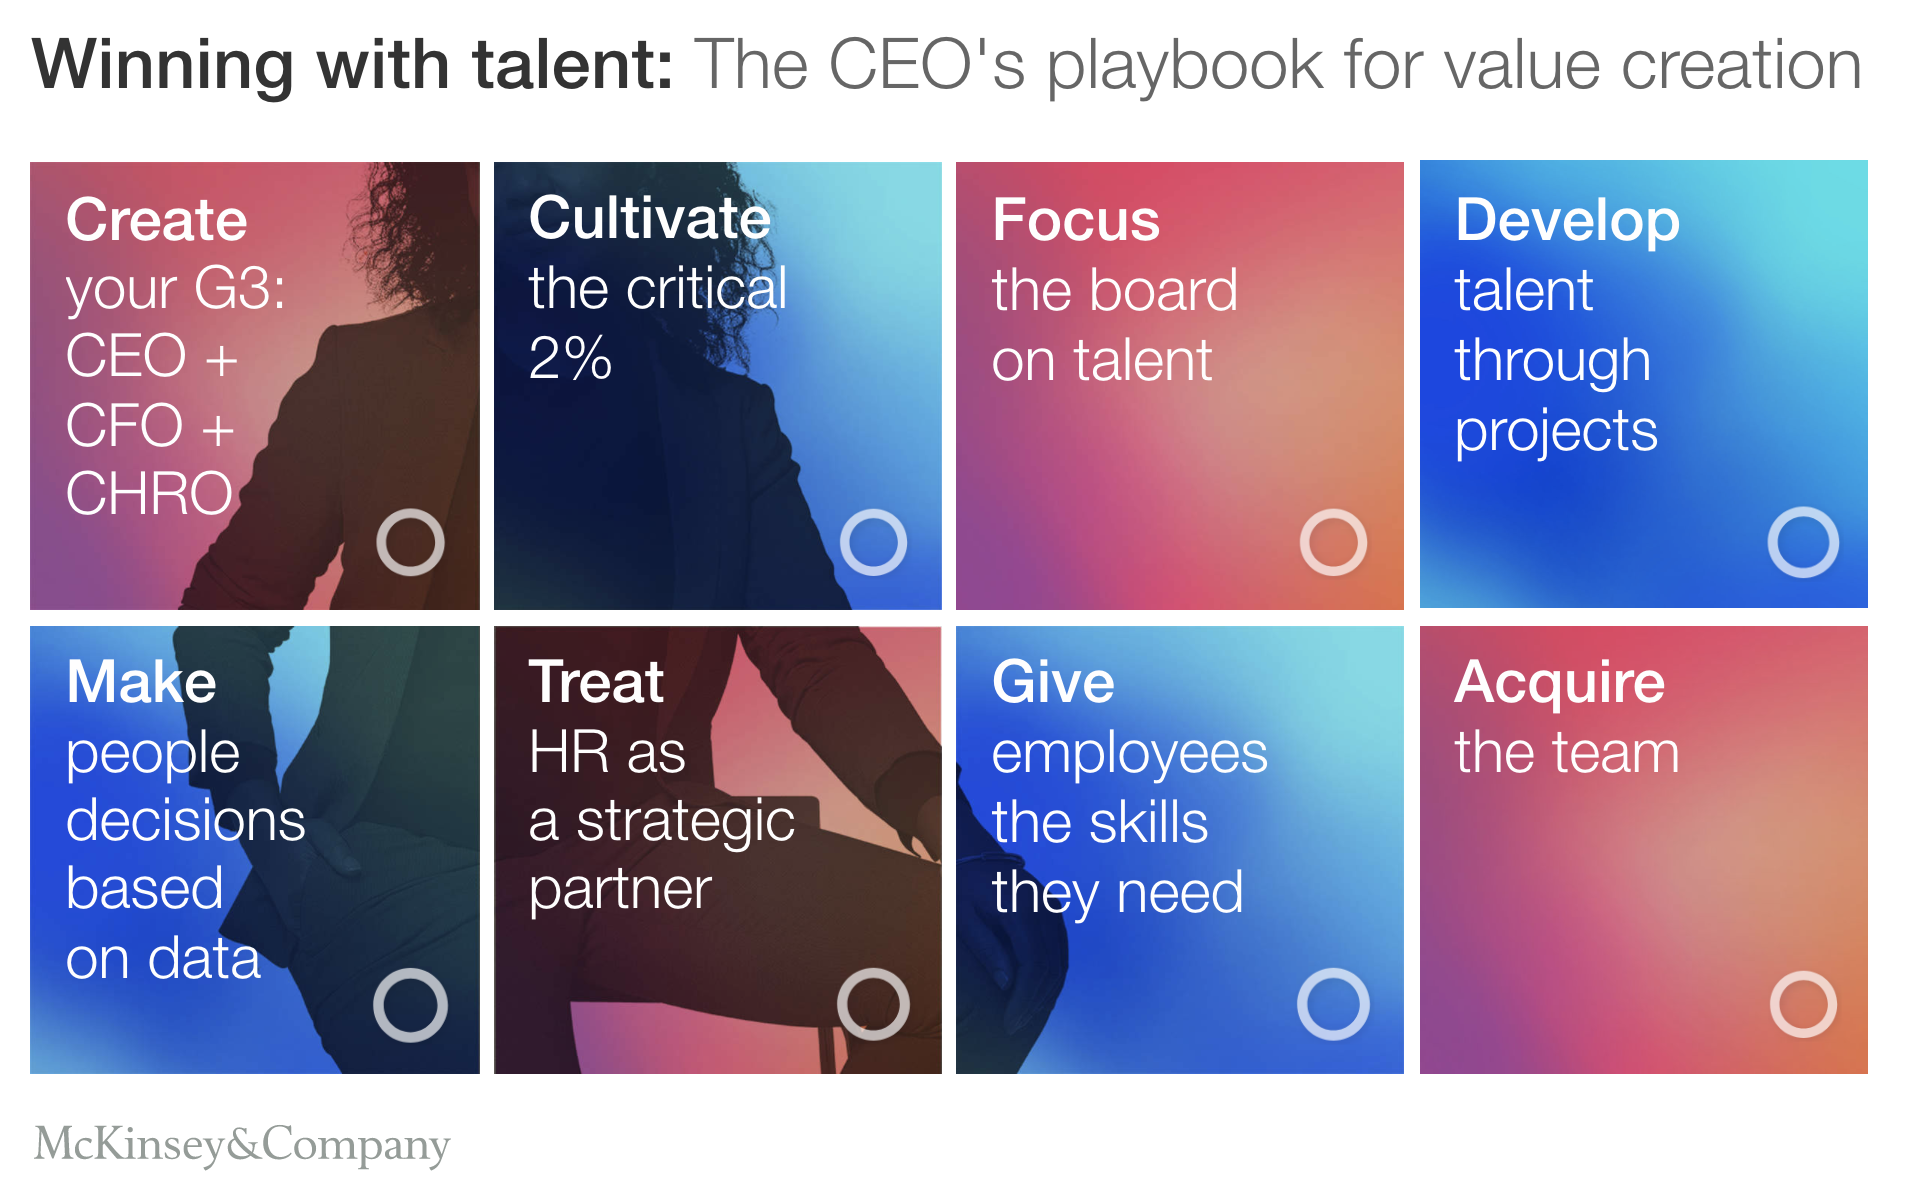 Figure 8   : Winning with talent: The CEOs playbook for value creation (Source: McKinsey)